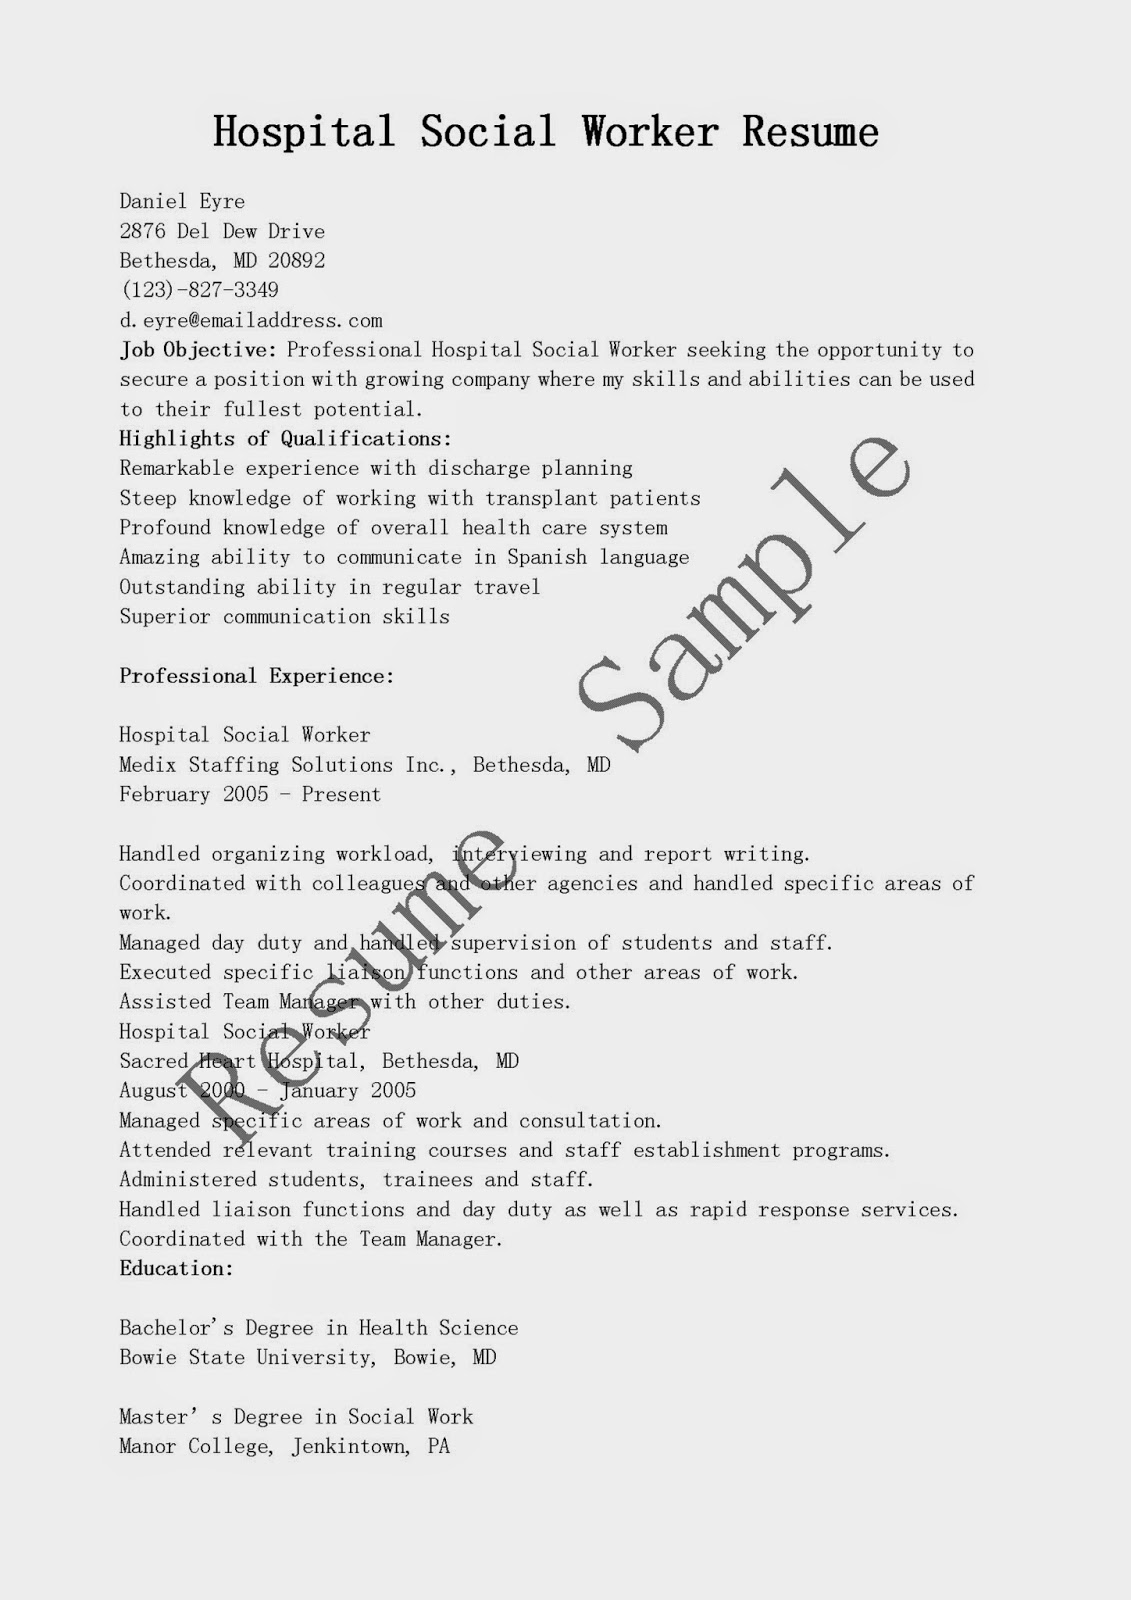 Professional Social Work Resume. brilliant ideas of 43 fresh social ...